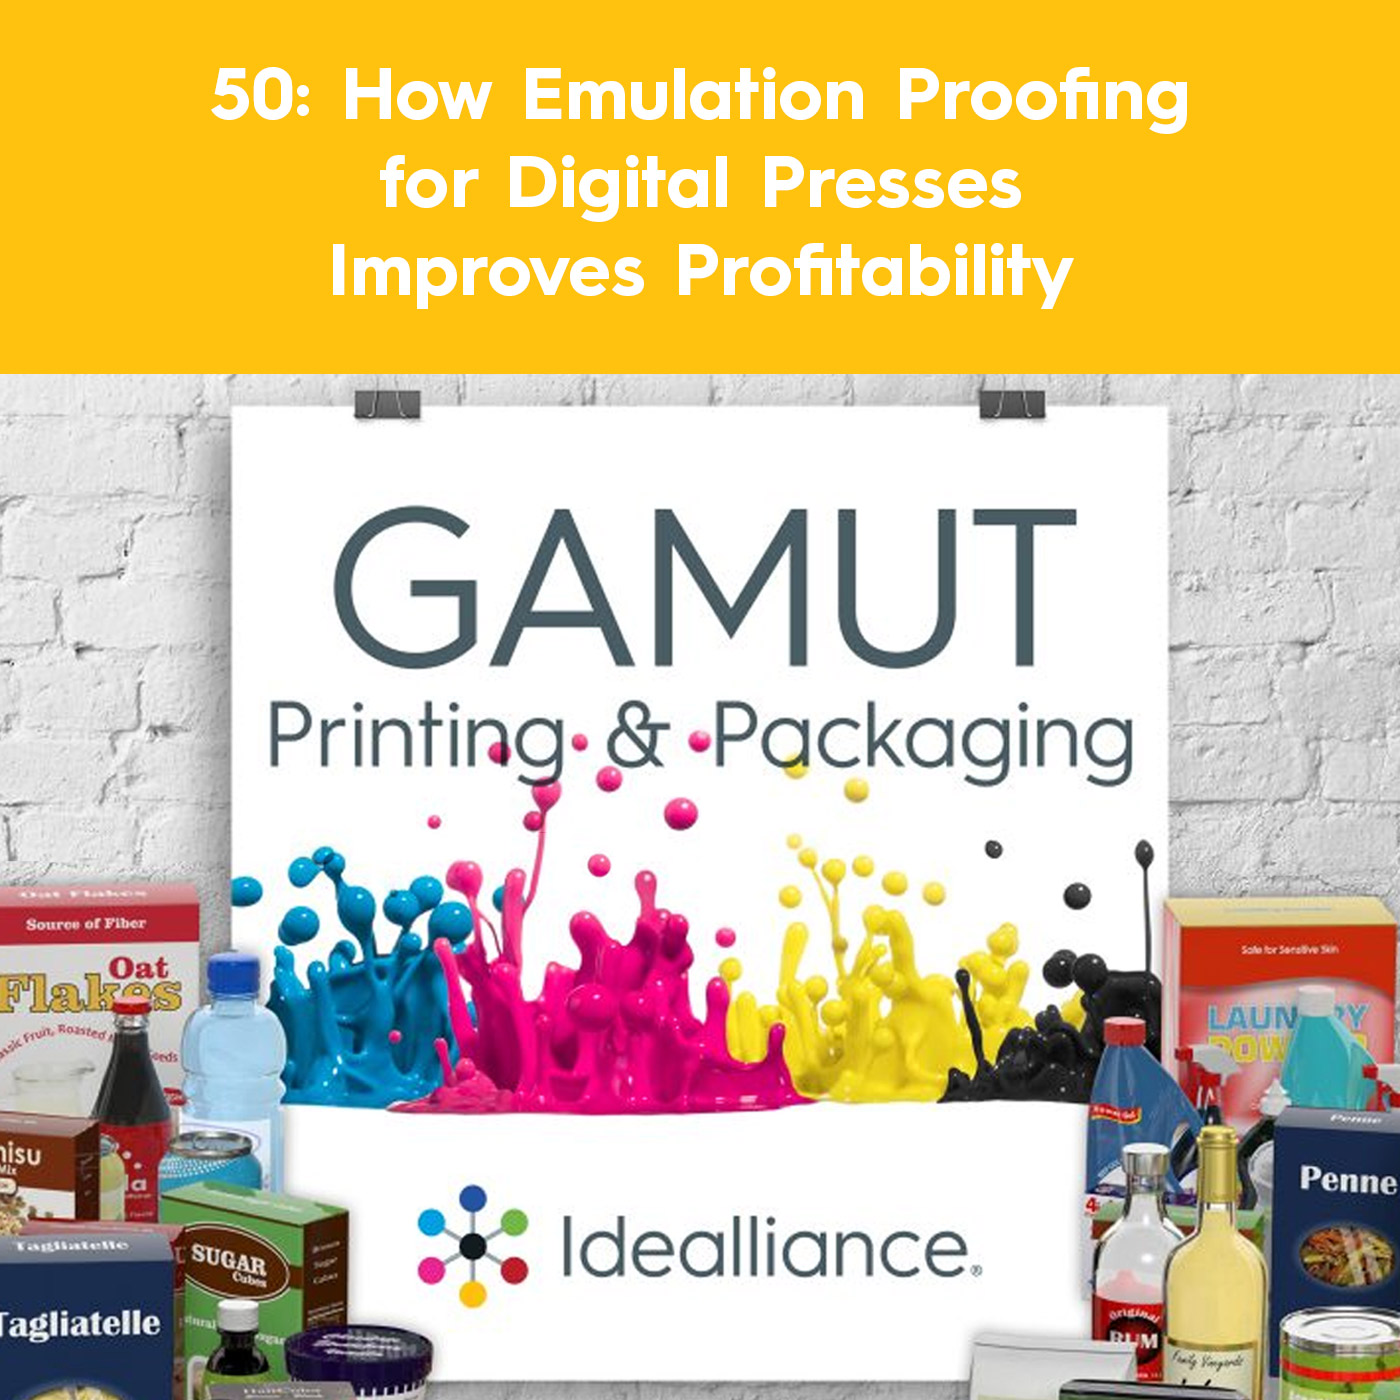 Gamut Podcast: How Emulation Proofing for Digital Presses Improves Profitability